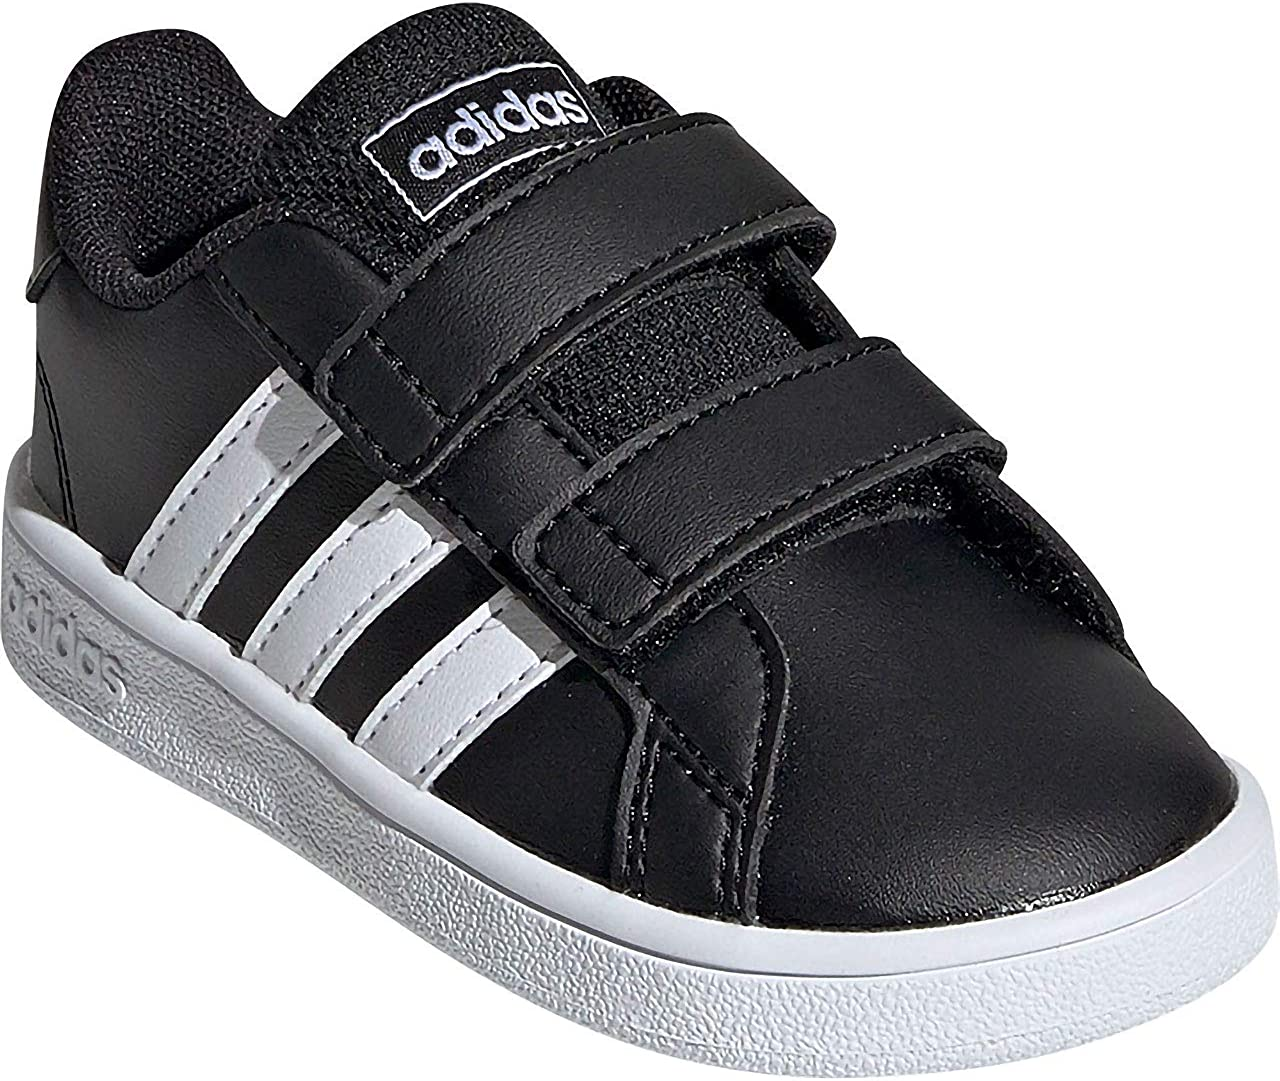 Zapatillas de Estar por casa Unisex beb/é adidas Grand Court I